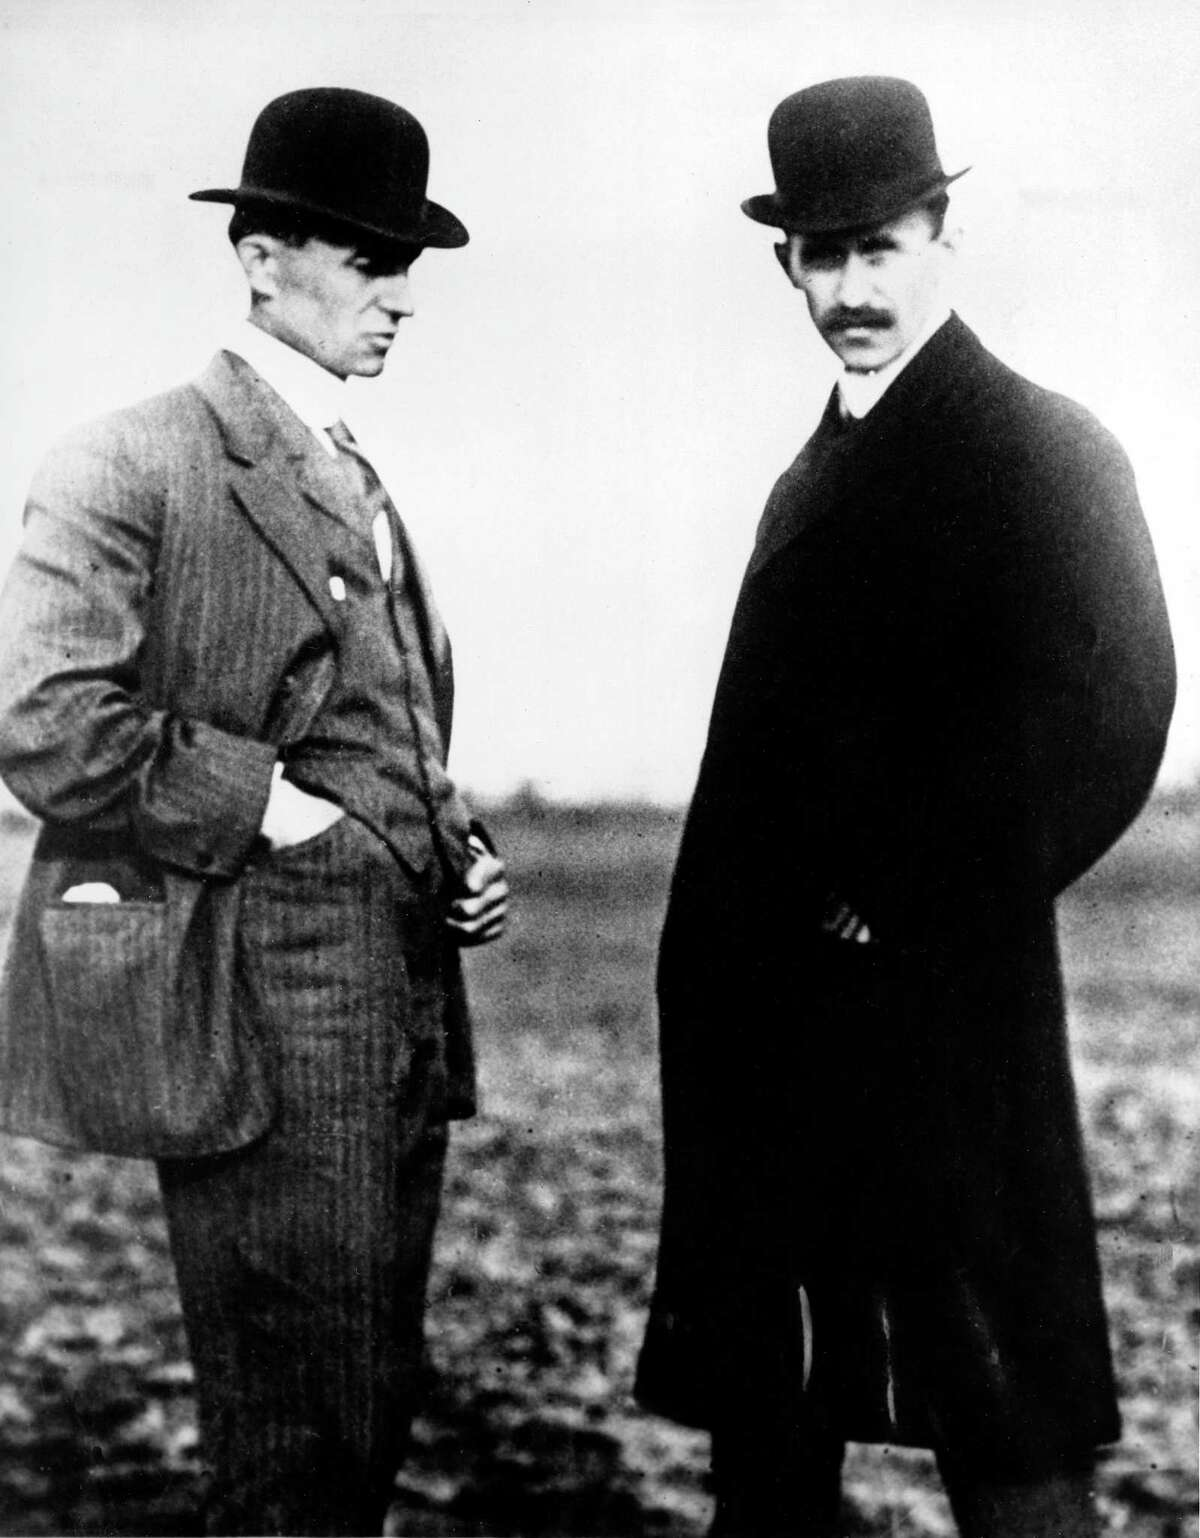 Wilbur Wright, left, and Orville Wright are shown in this undated file photo.The Wright brothers worked together to build and fly the first Wright Biplane, which made a successful flight on December 17, 1903 at Kill Devil Hills near Kitty Hawk, North Carolina.